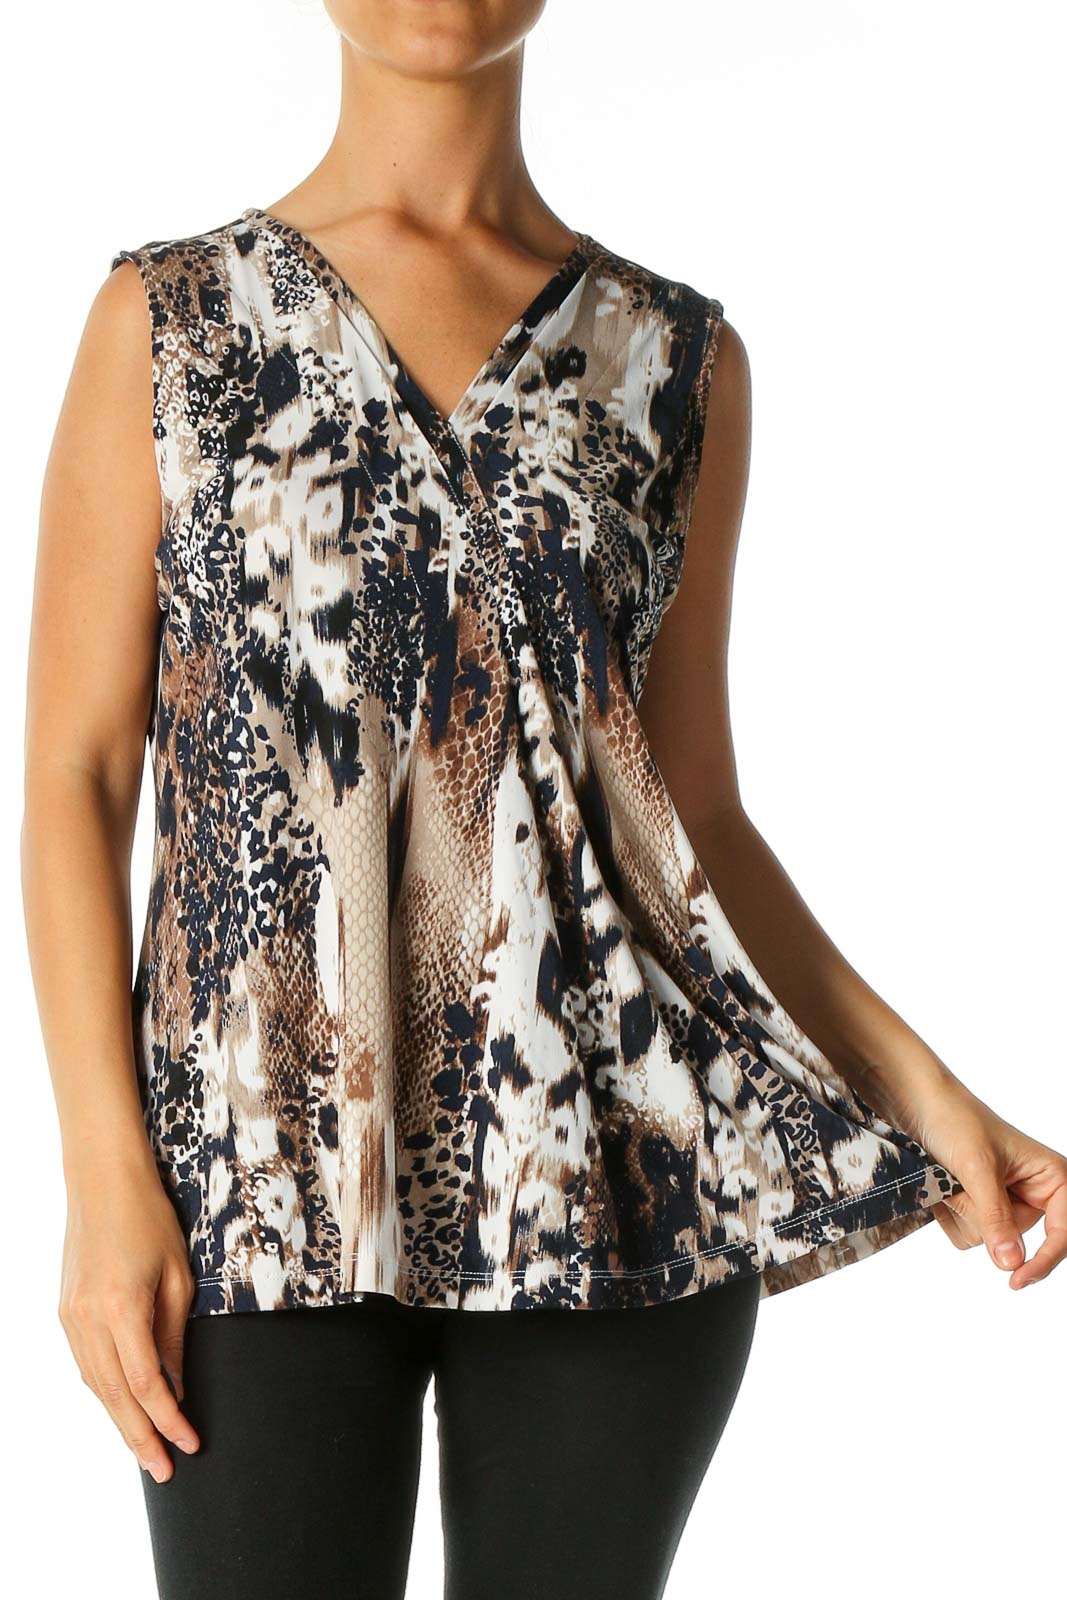 Brown Animal Print Casual Blouse Front